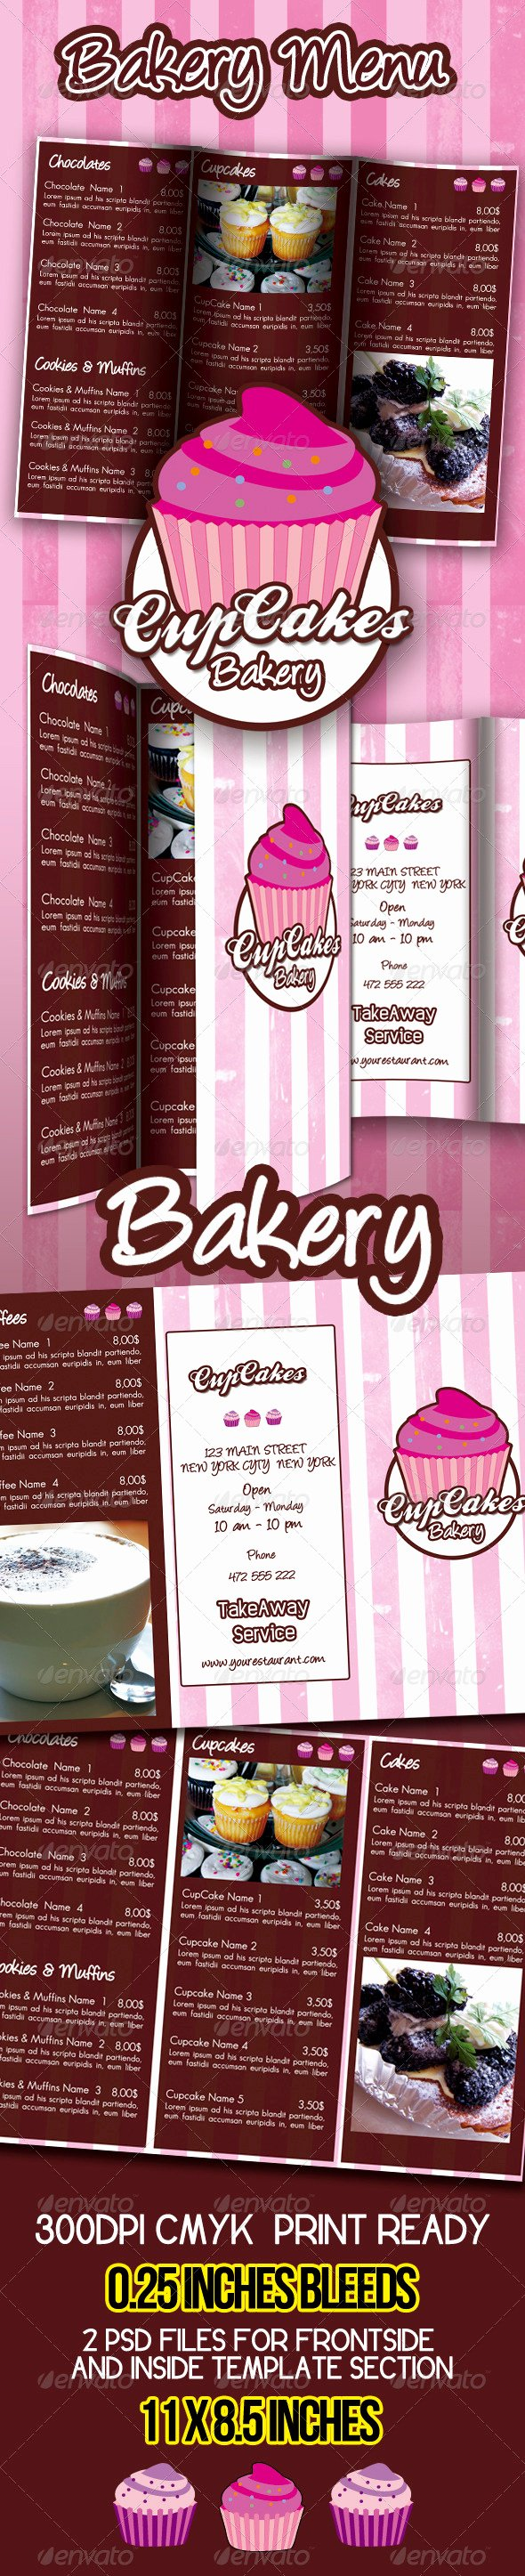 Free Bakery Menu Template Beautiful Bakery Menu Template Free